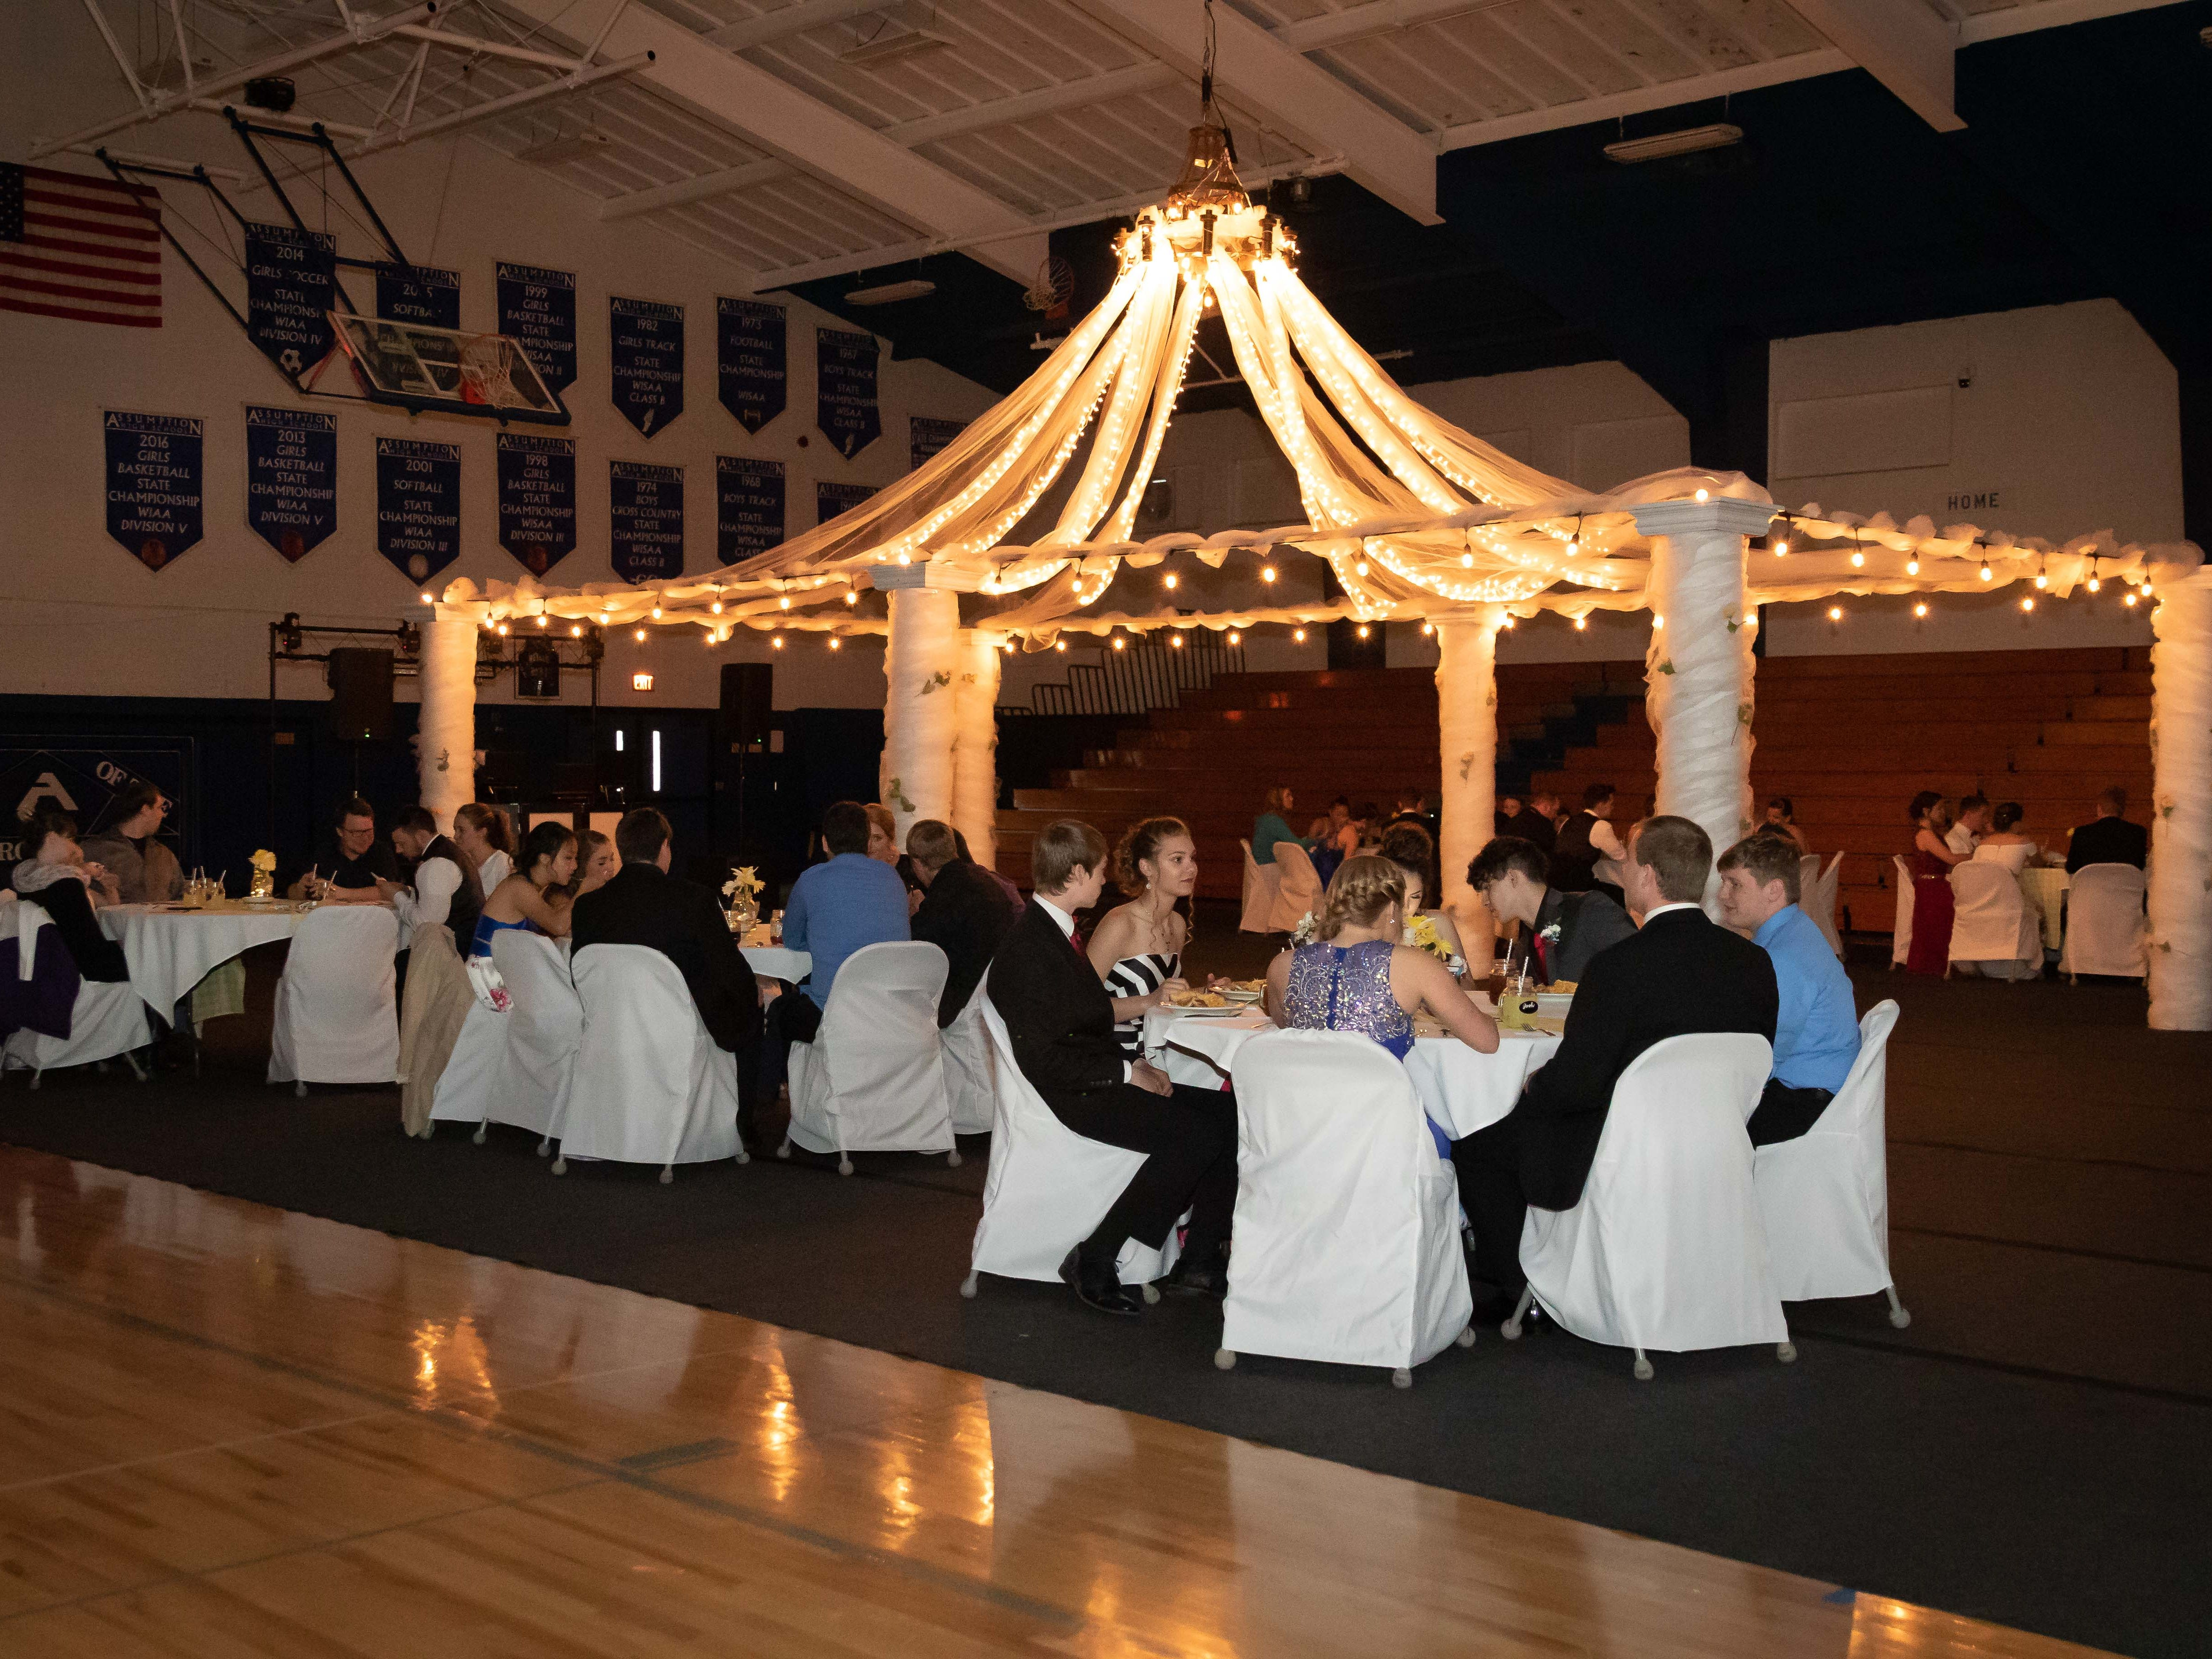 Students enjoy dinner before the Assumption High School prom on Saturday, April 27, 2019, at Assumption High School.